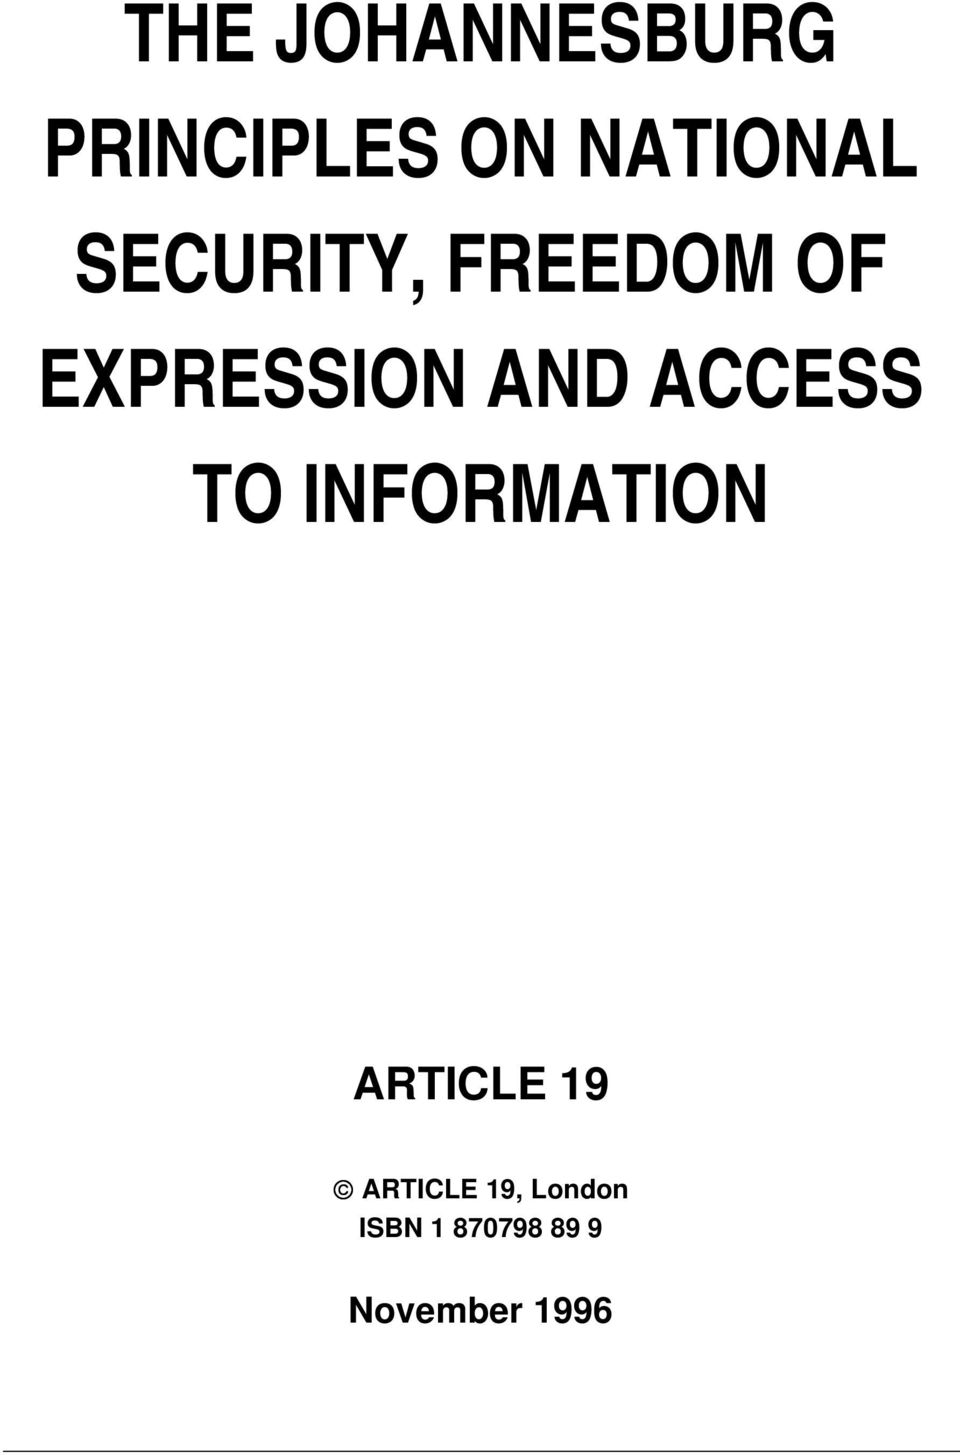 ACCESS TO INFORMATION ARTICLE 19